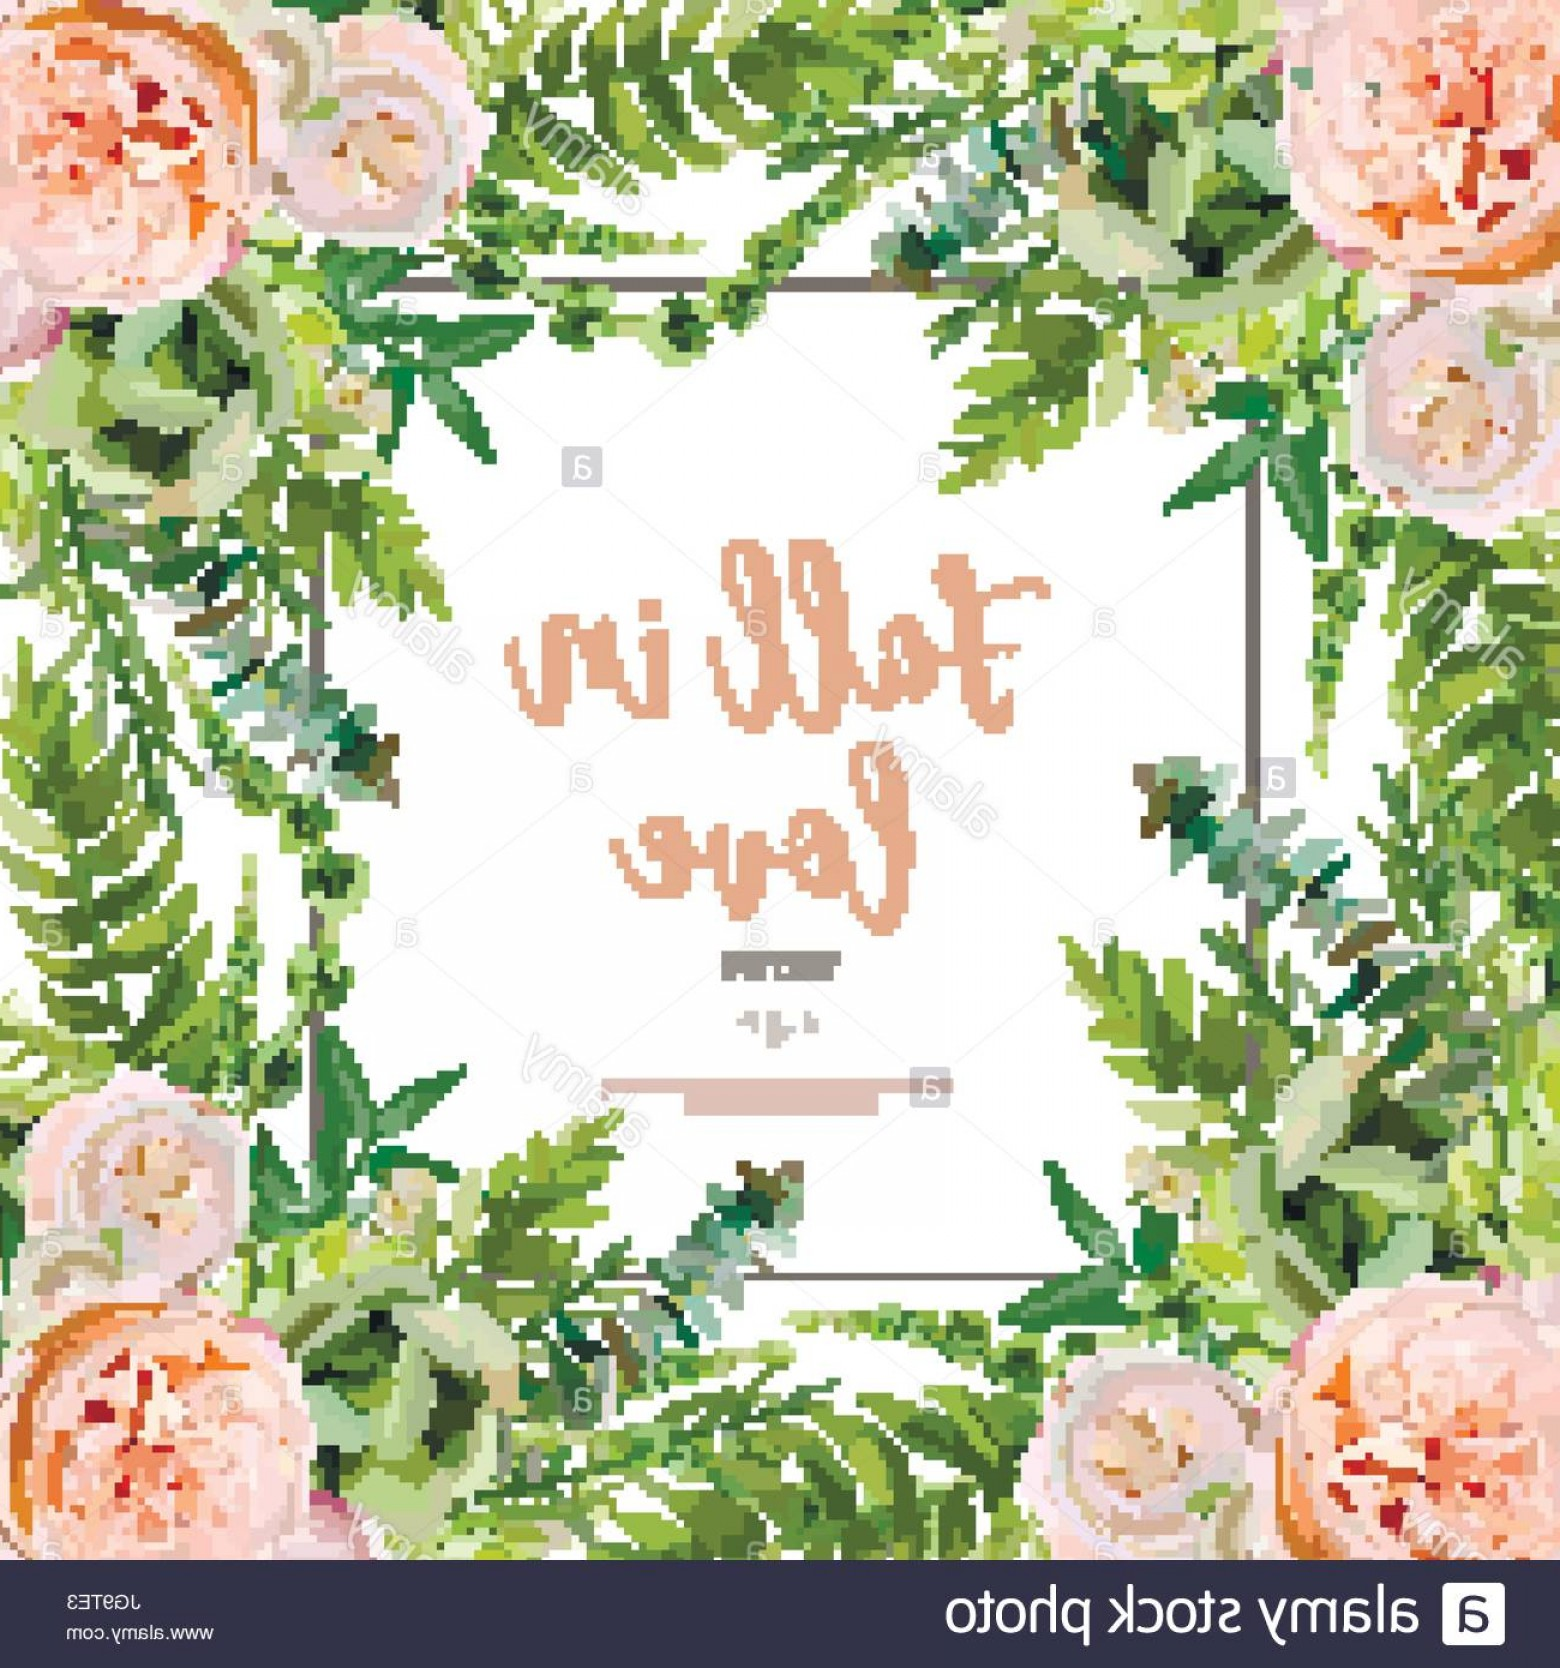 Cactus And Flower Vector: Stock Photo Vector Floral Design Square Card Design Soft Succulent Cactus Flower